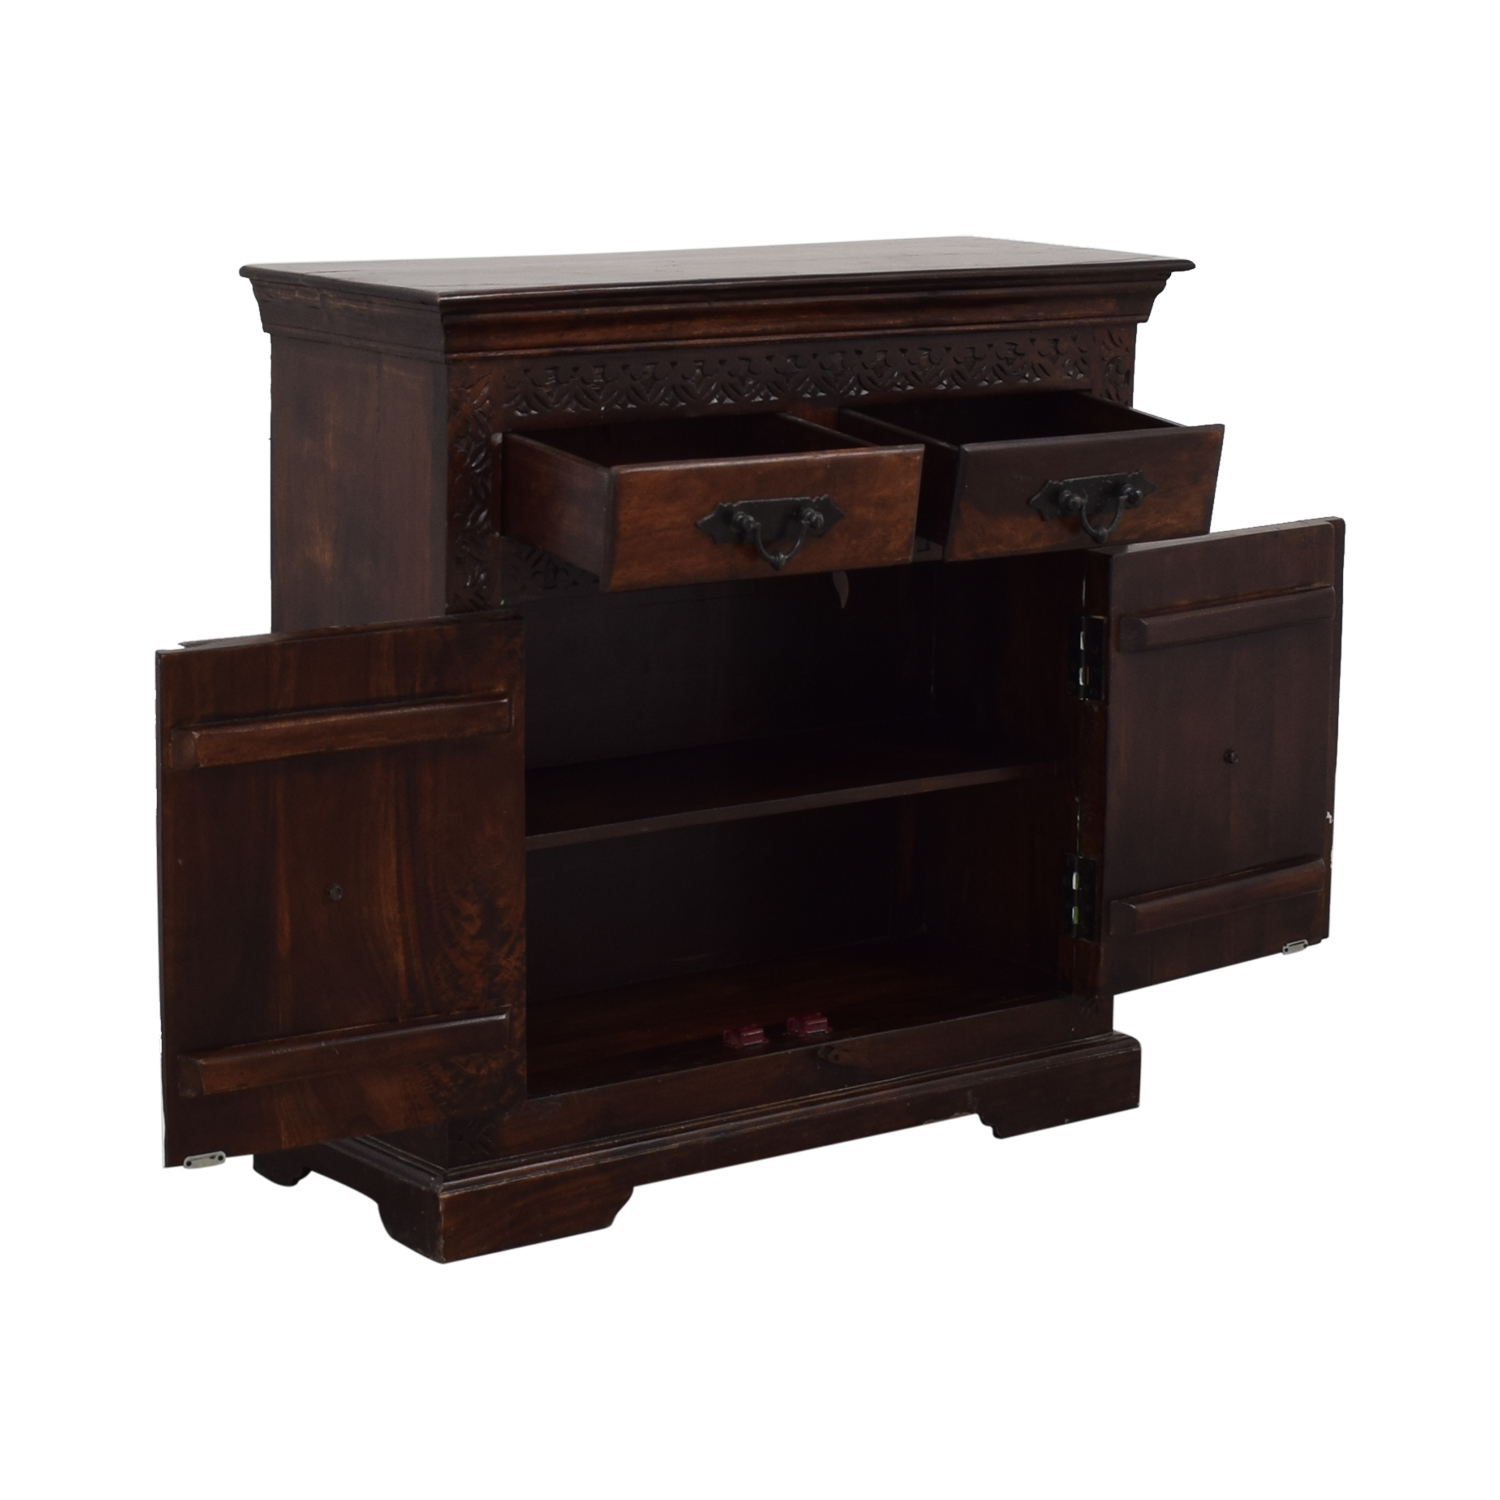 Wood Four-Drawer TV Stand